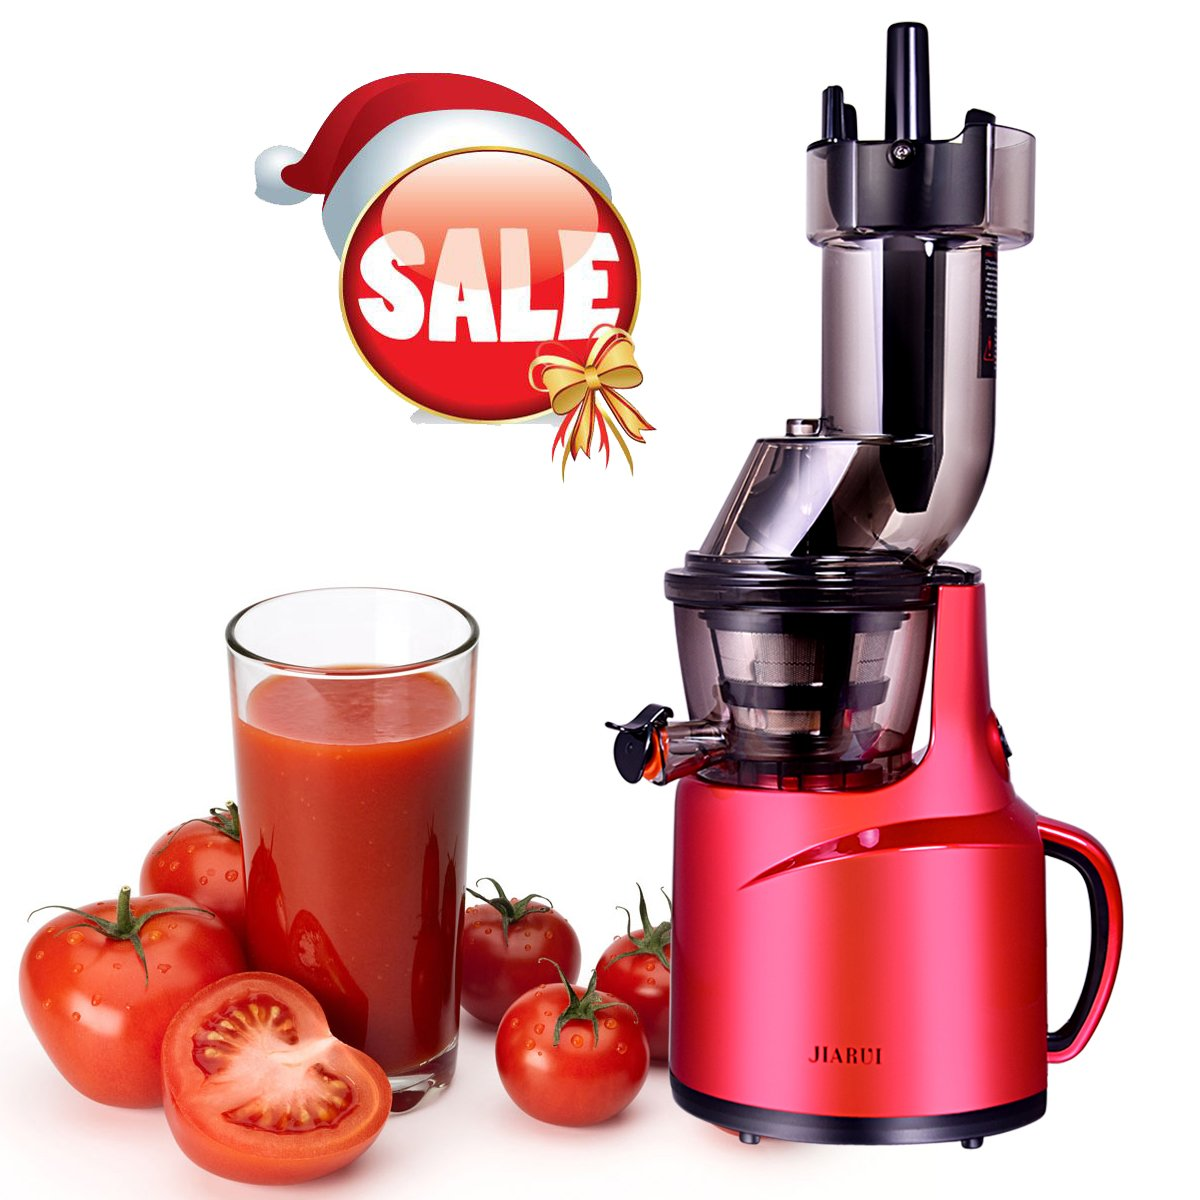 BPA-Free Whole Slow Juicer with Wide Mouth Juice Maker, 240W AC Motor, High Nutrient Fruit and Vegetable Juice JQUEEN